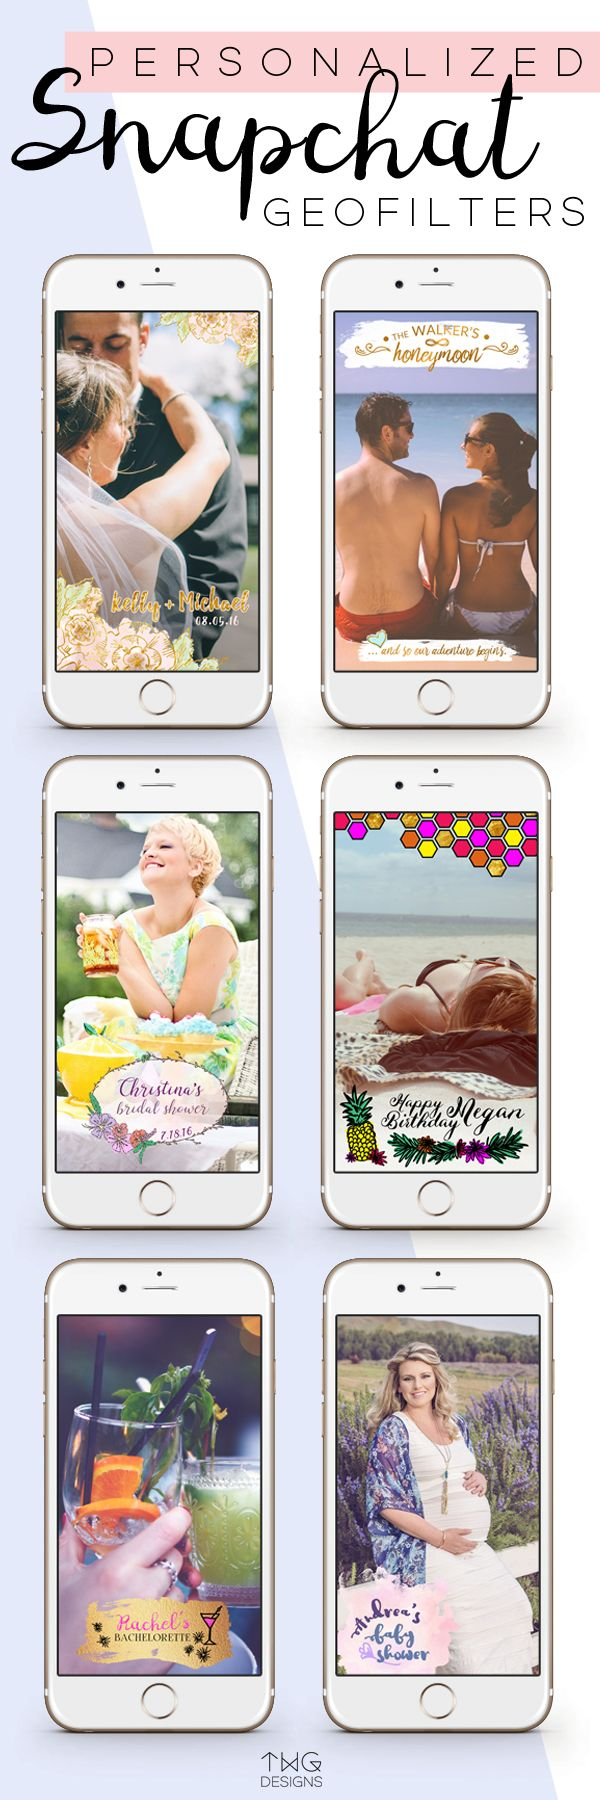 Custom Snapchat Geofilter Personalized with your NAME and event DATE! • For weddings, honeymoons, bridal showers, bachelorette parties, baby showers, birthdays, graduation, and more!